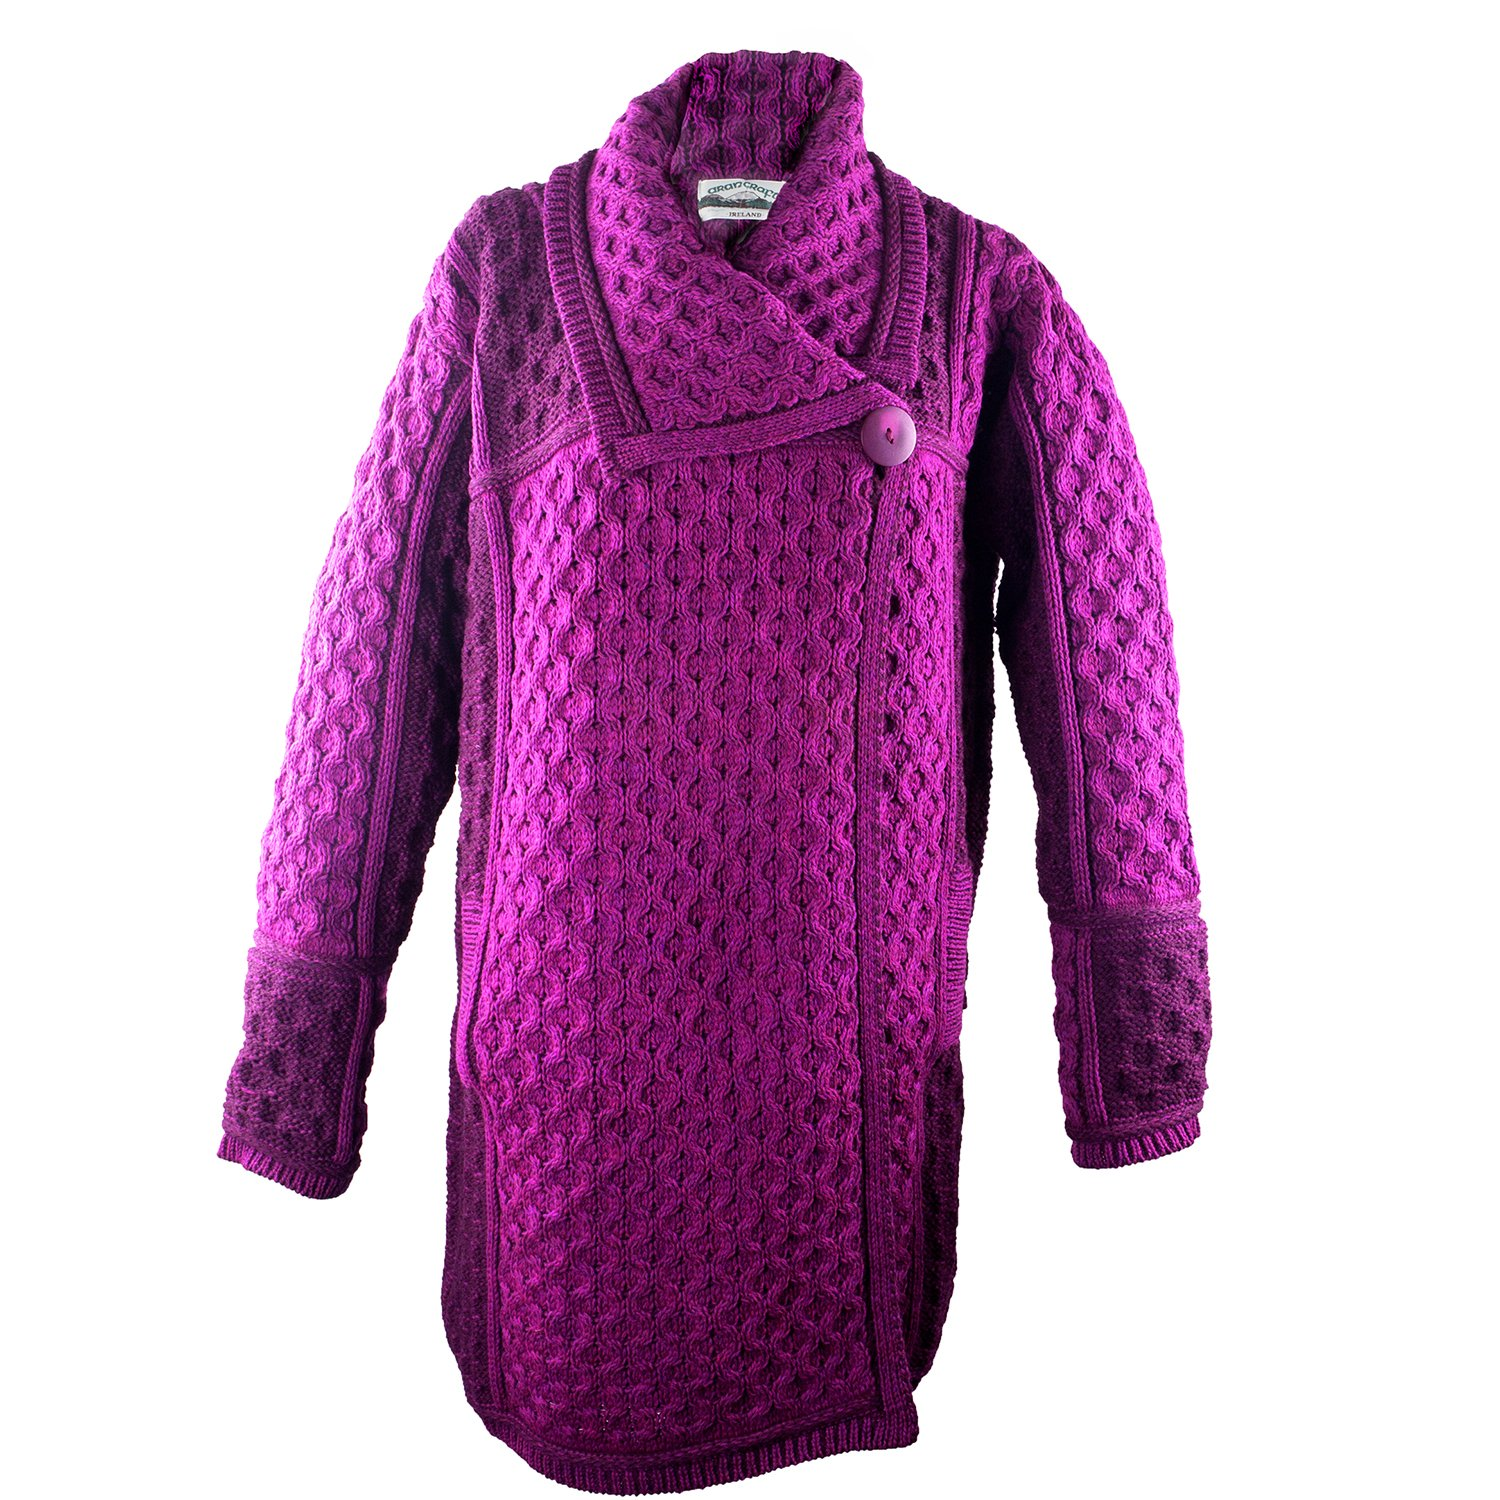 100% Irish Merino Wool Single Button Ladies Plated Coat by Westend Knitwear, Red,Large